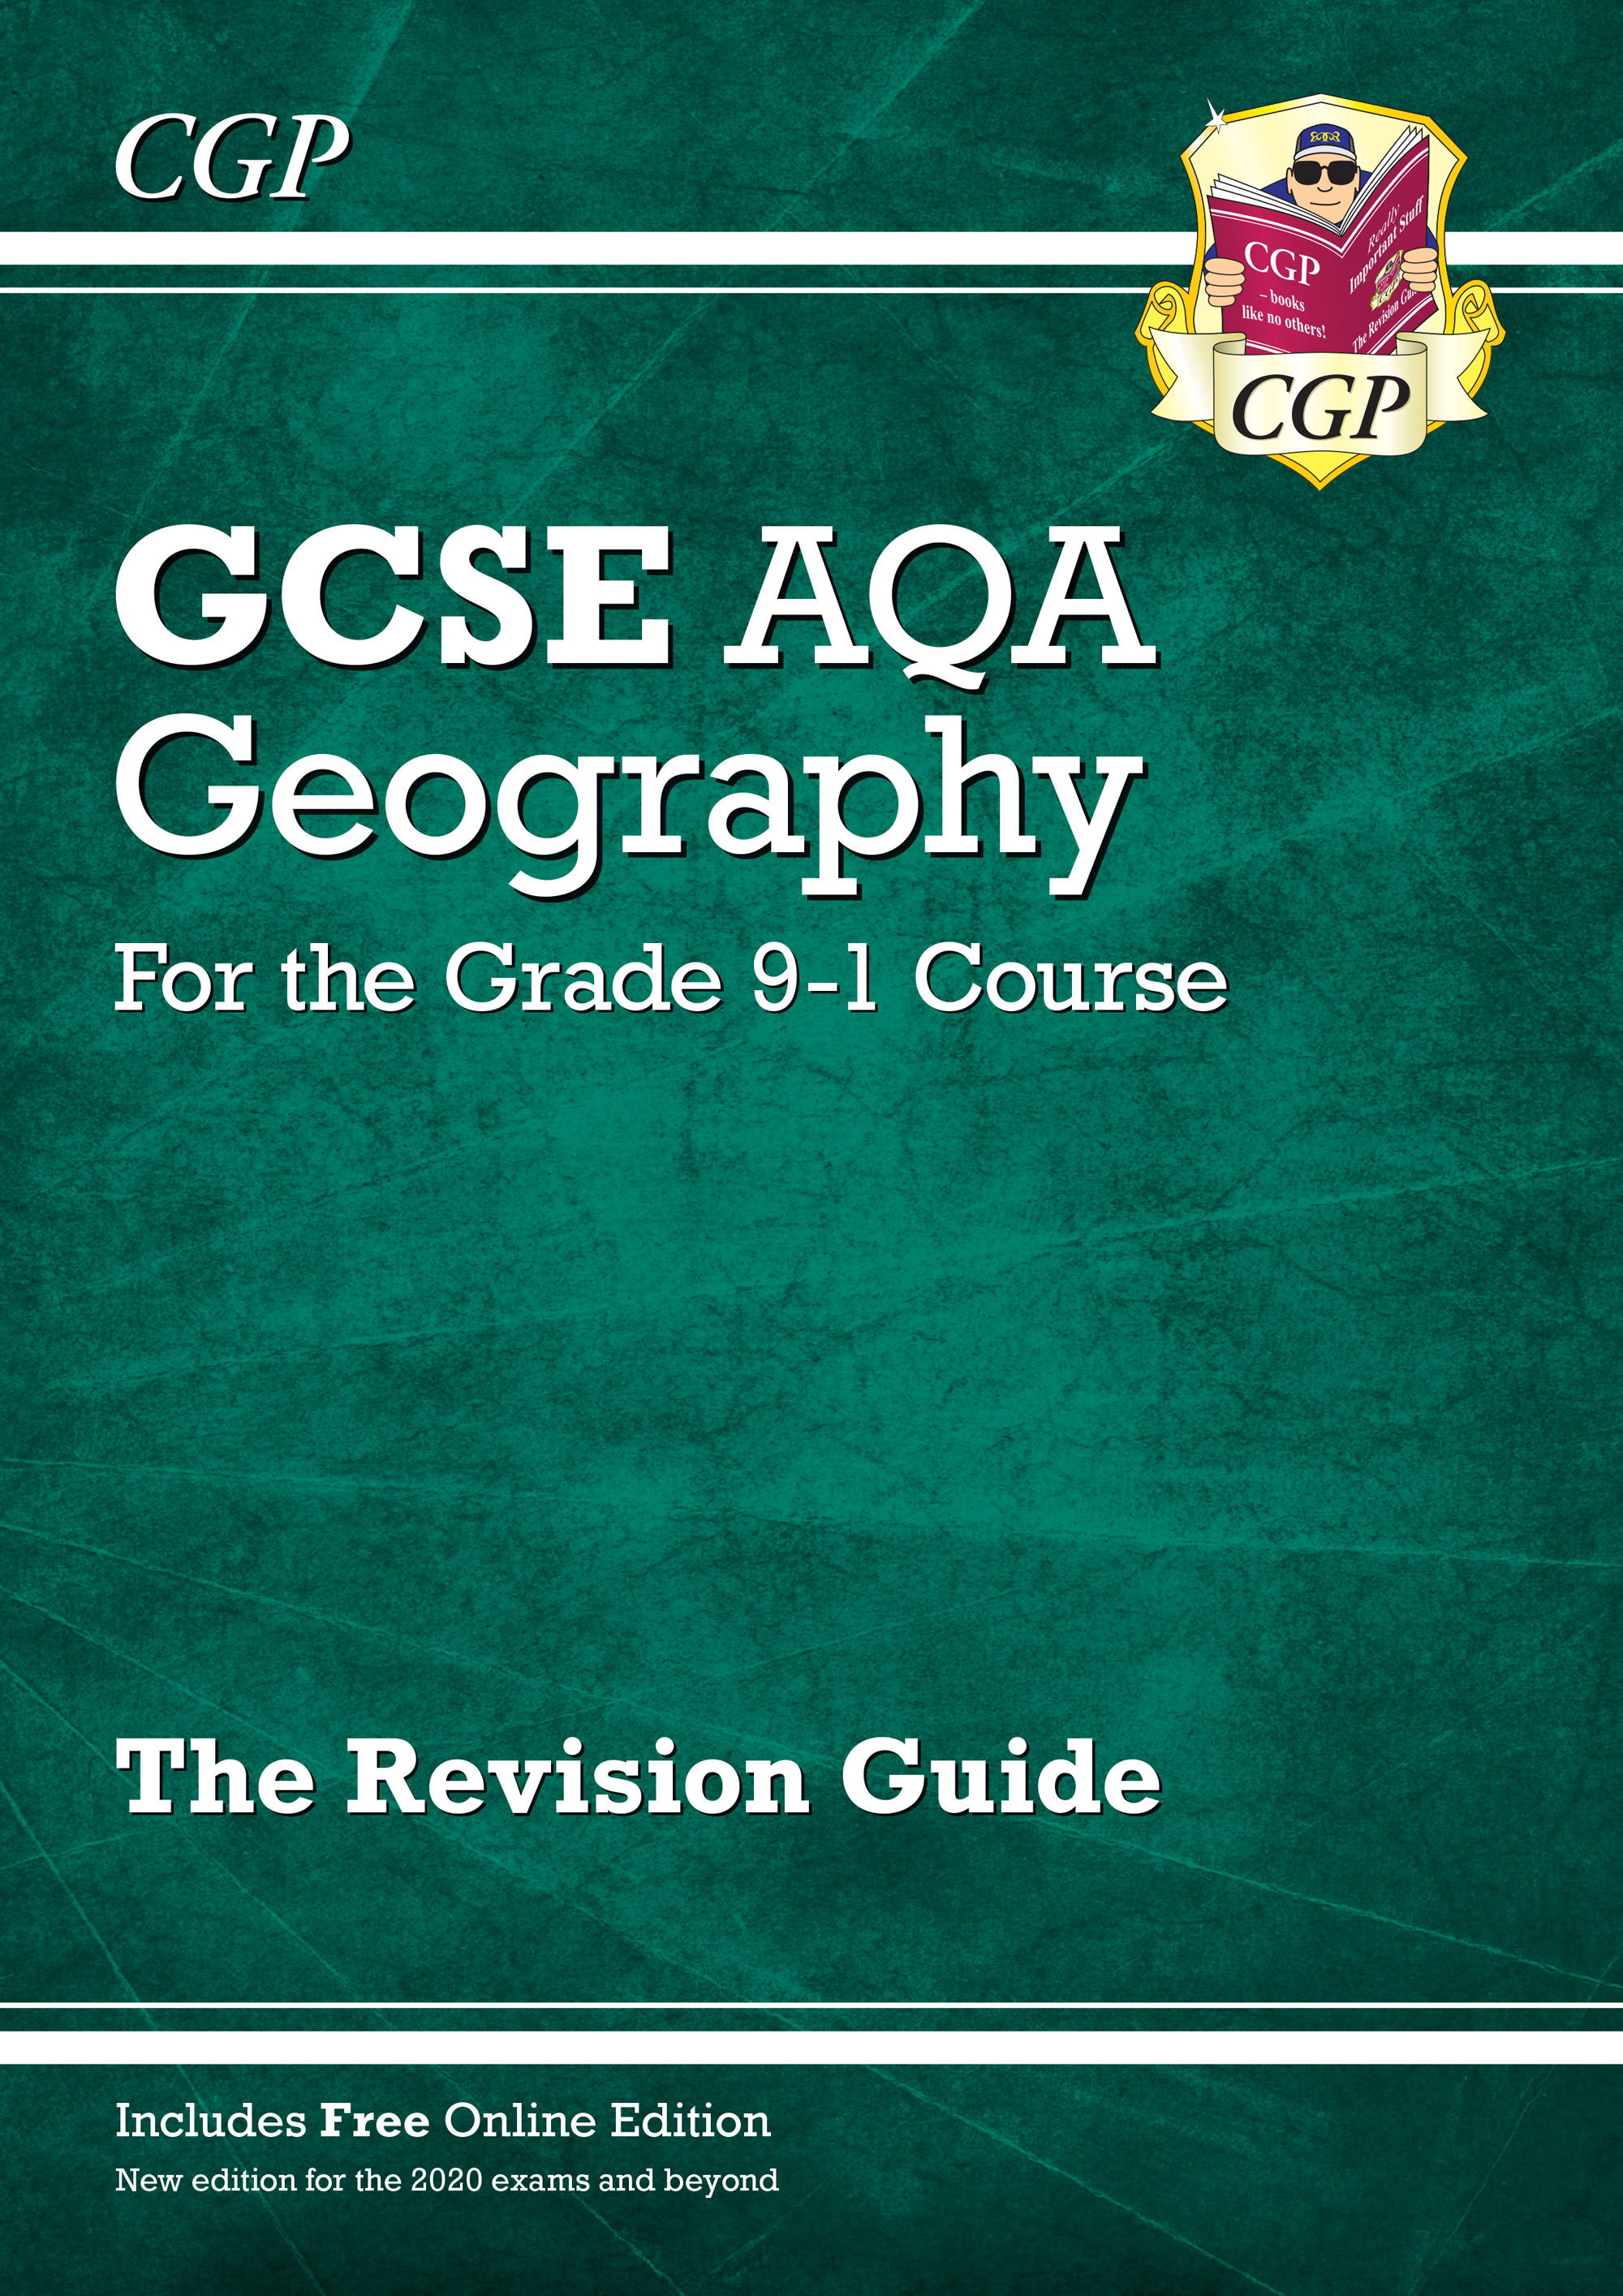 GAR45 - GCSE 9-1 Geography AQA Revision Guide (with Online Ed) - Edition for 2021 exams & beyond